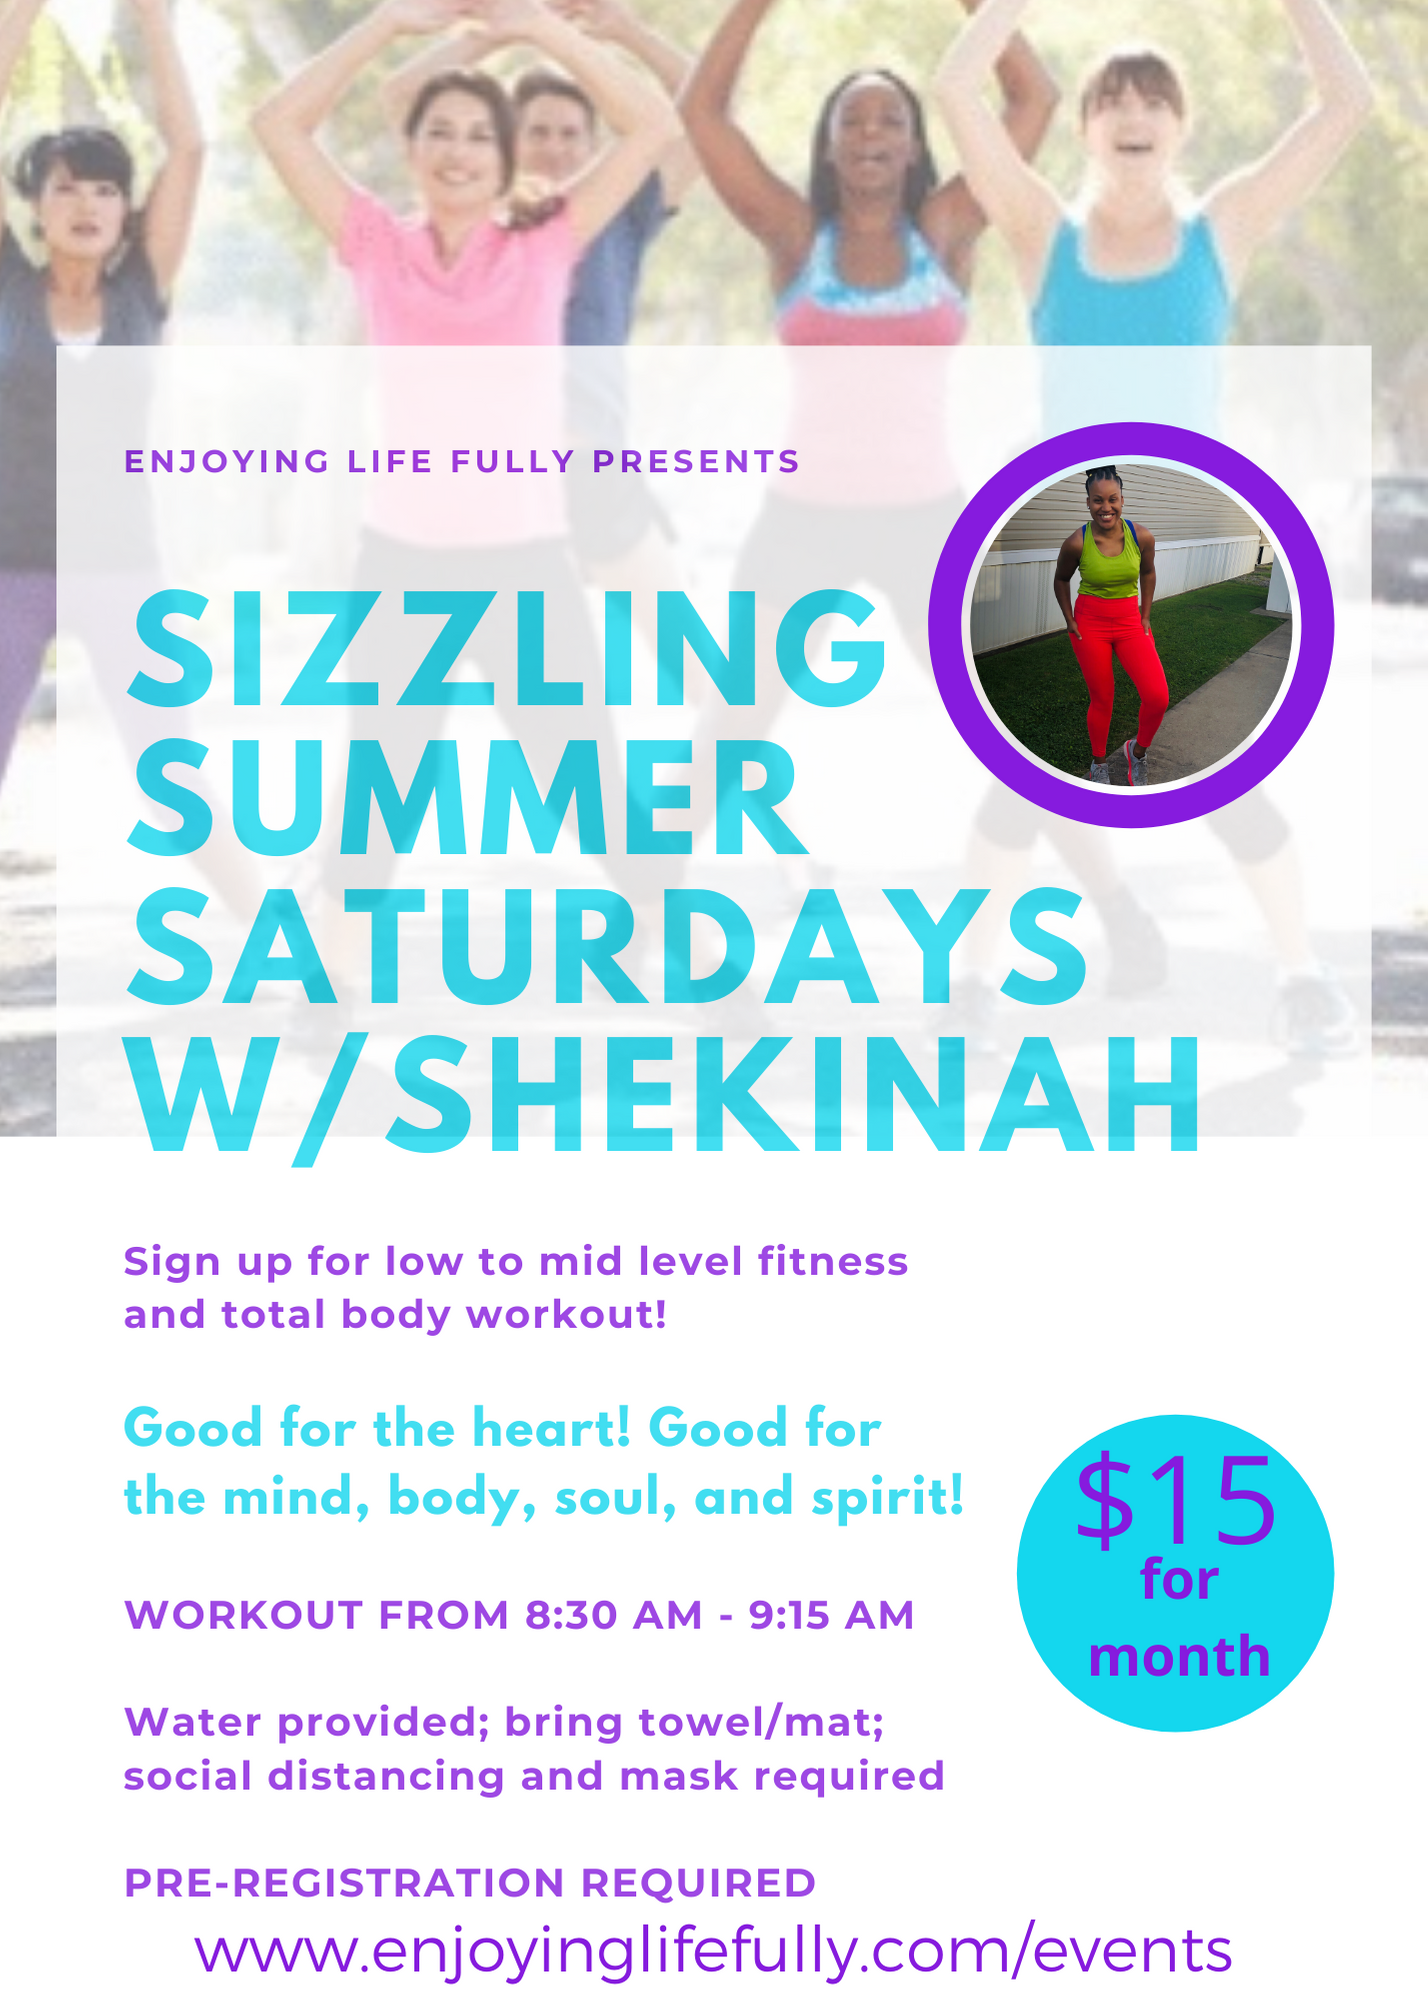 Sizzling Summer Saturdays w/Shekinah - Month of August